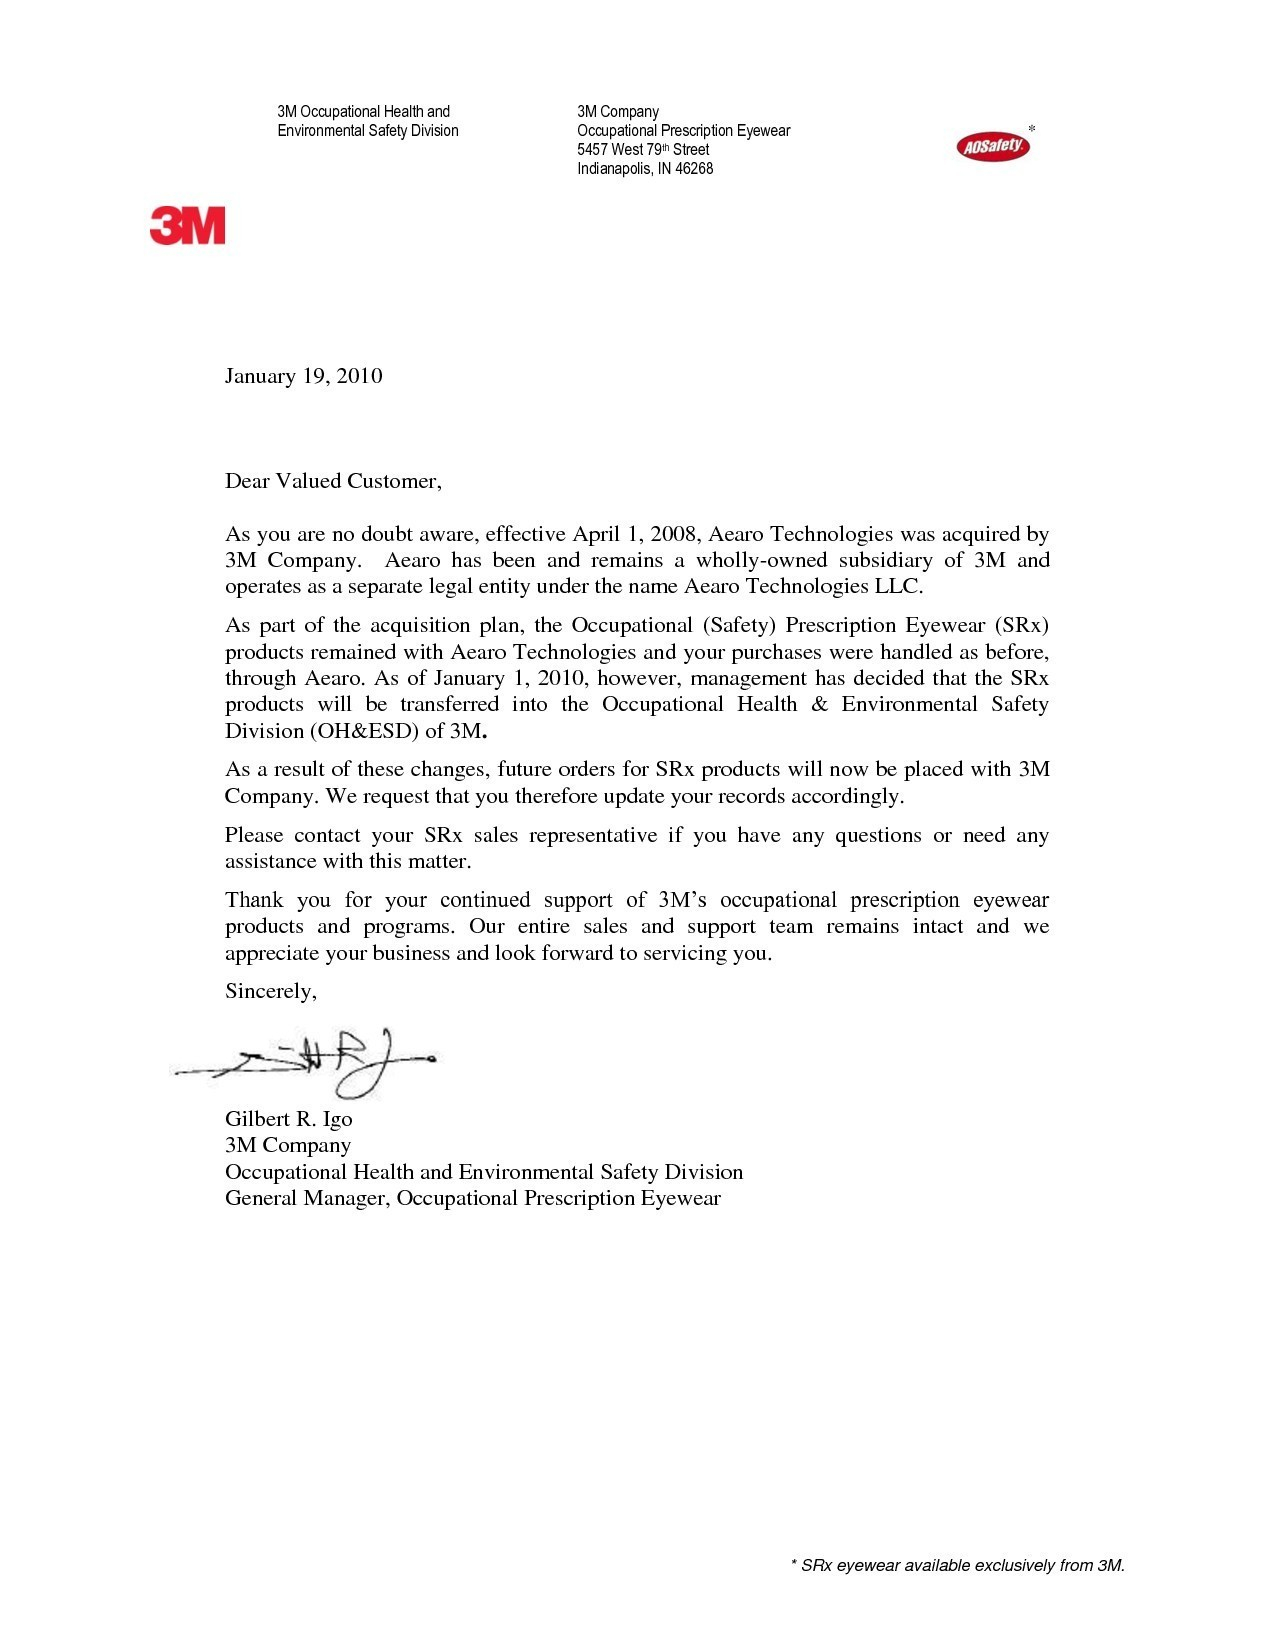 Change Of Name Letter Template - Sample Name Change Letter format New Letter Sample for Change Pany